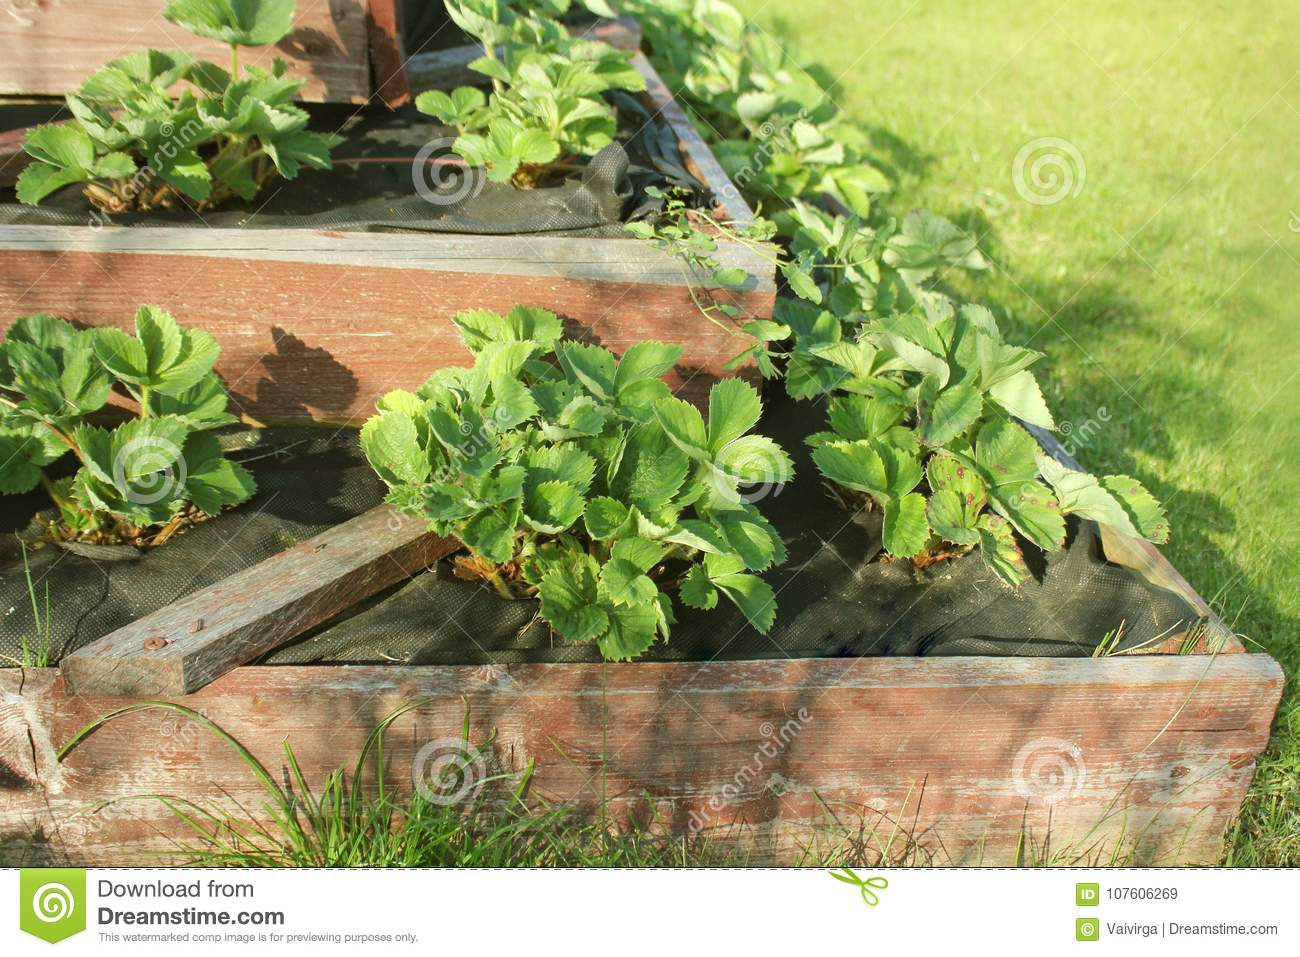 Strawberries Grows Up In Raised Garden Bed Pyramid Raised